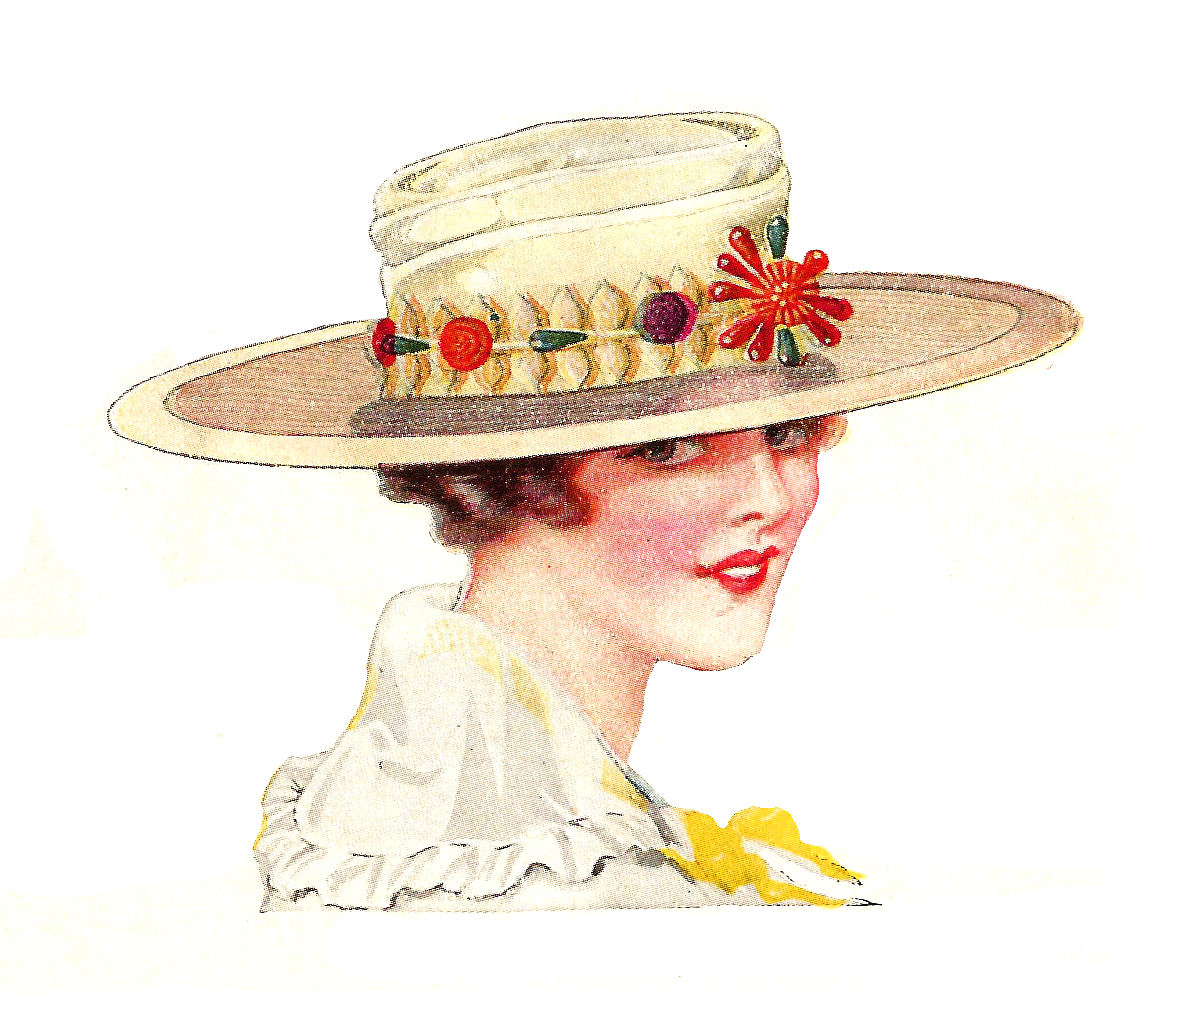 Pin by Maria Williard on Fathers Day Crafts | Clip art ...  |Vintage Hat Art